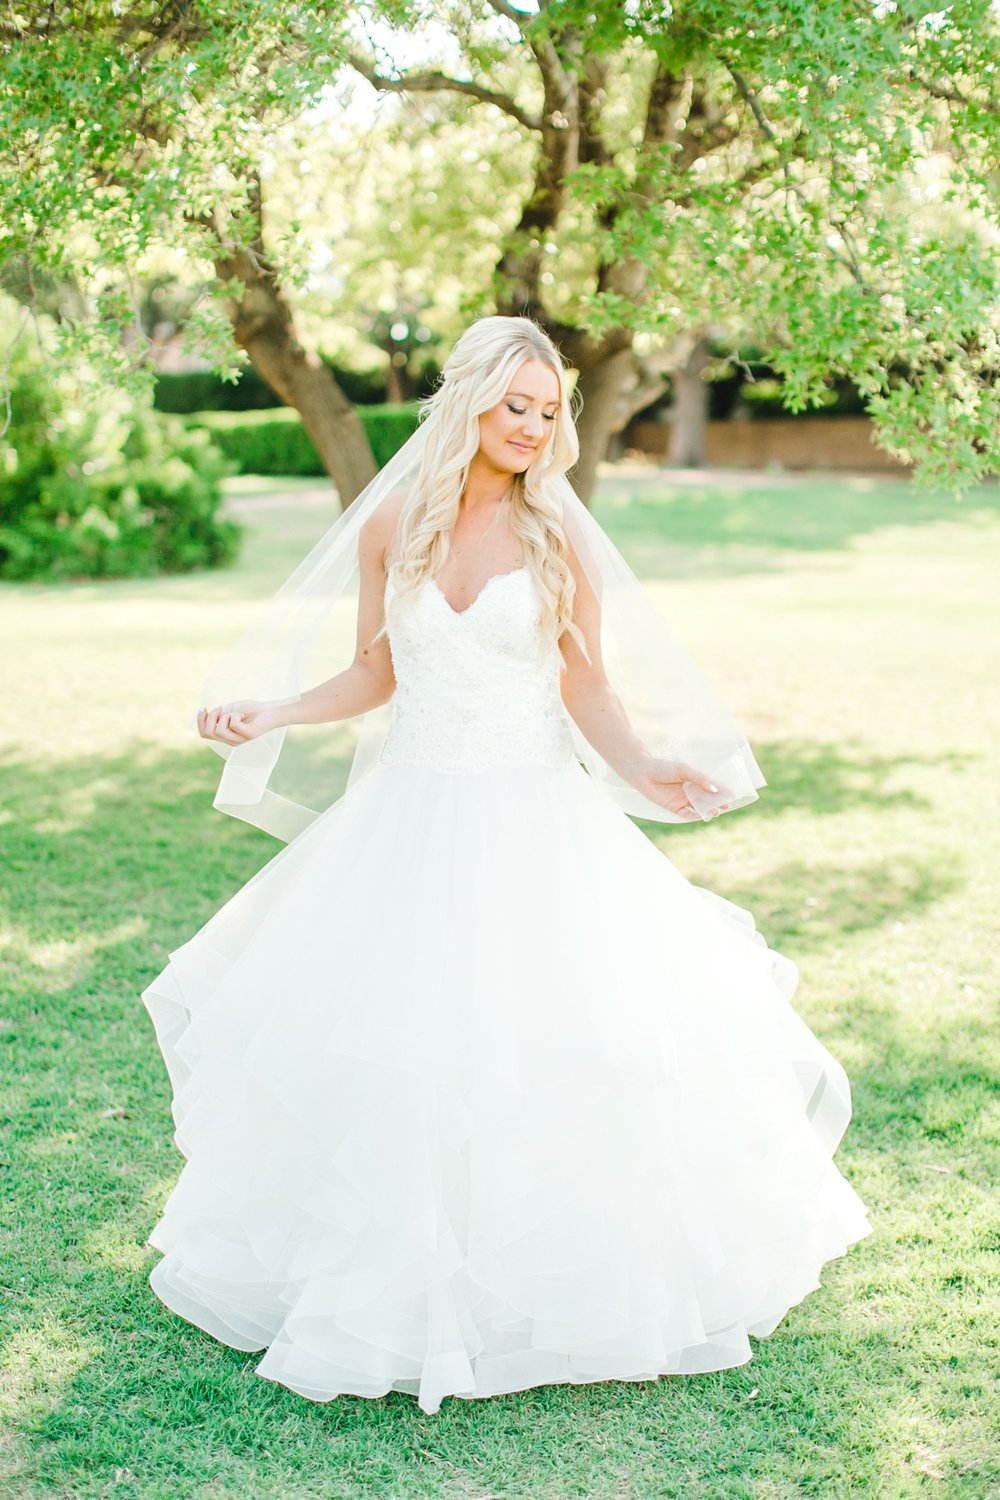 MADI_WRIGHT_BRIDALS_ALLEEJ_LUBBOCK_PHOTOGRAPHER0016.jpg